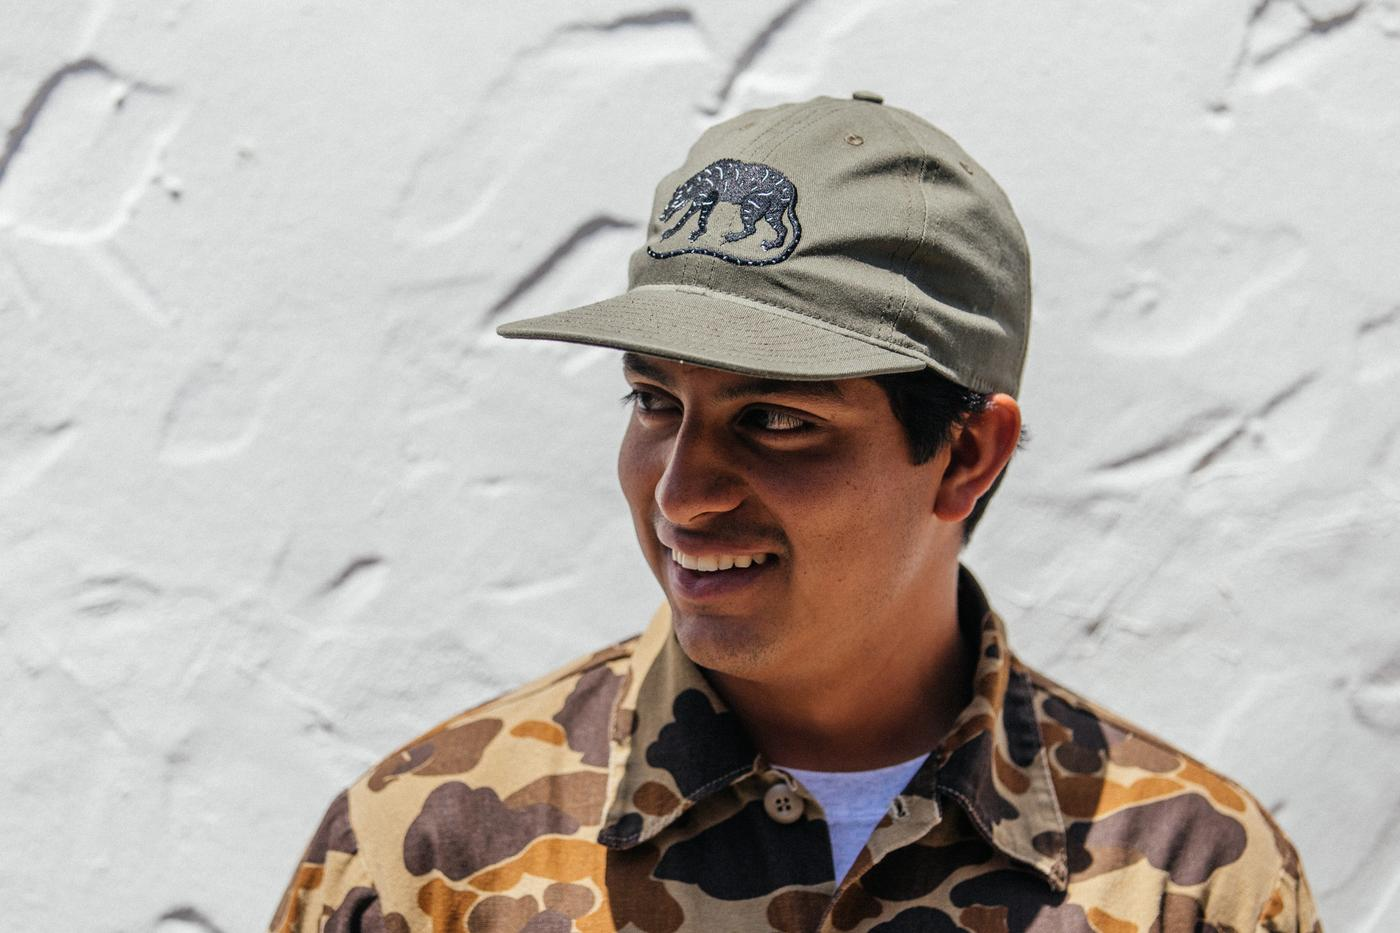 The Radavist x Fairends Camp Hats Are Back in Stock!